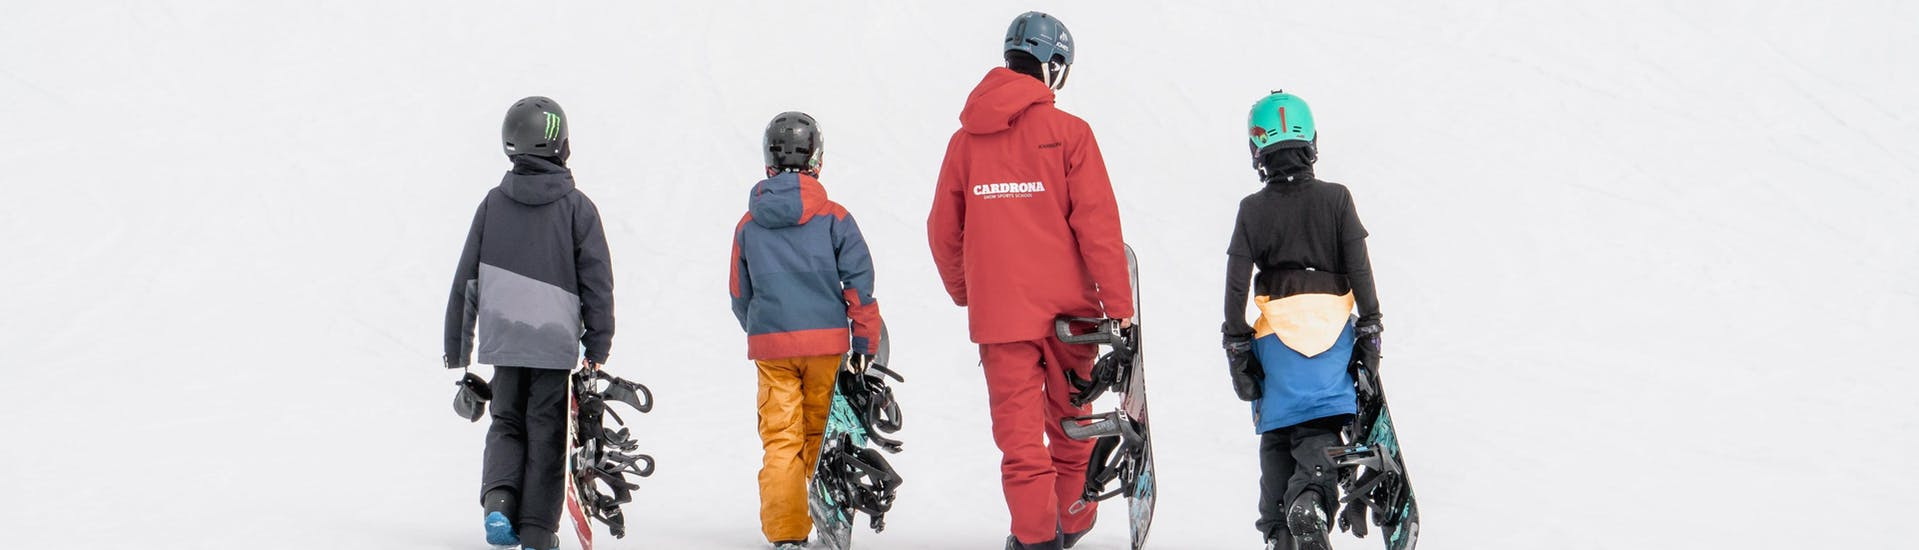 """Snowboarding Lessons """"Lowriders"""" (7-14 years) - All Levels"""